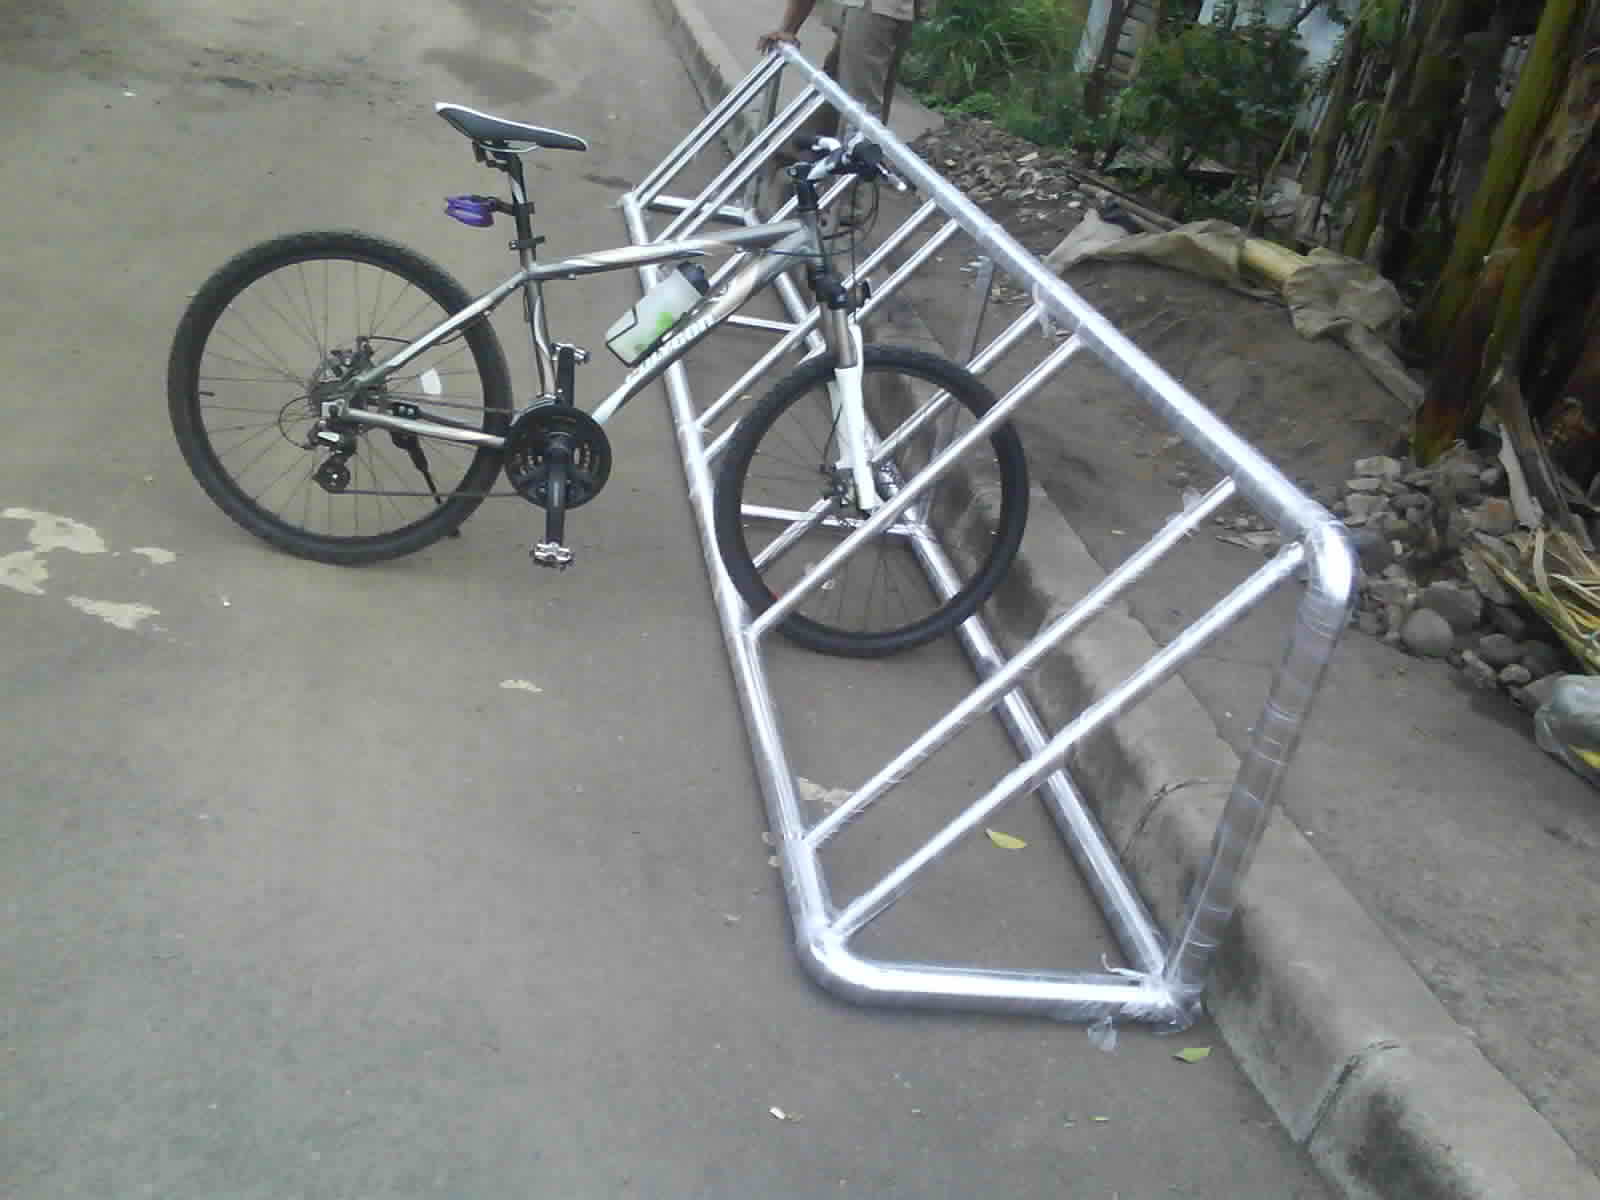 https://www.bumata.co.id/product/parkir-sepeda-stainless-bicycle-parking-rack/